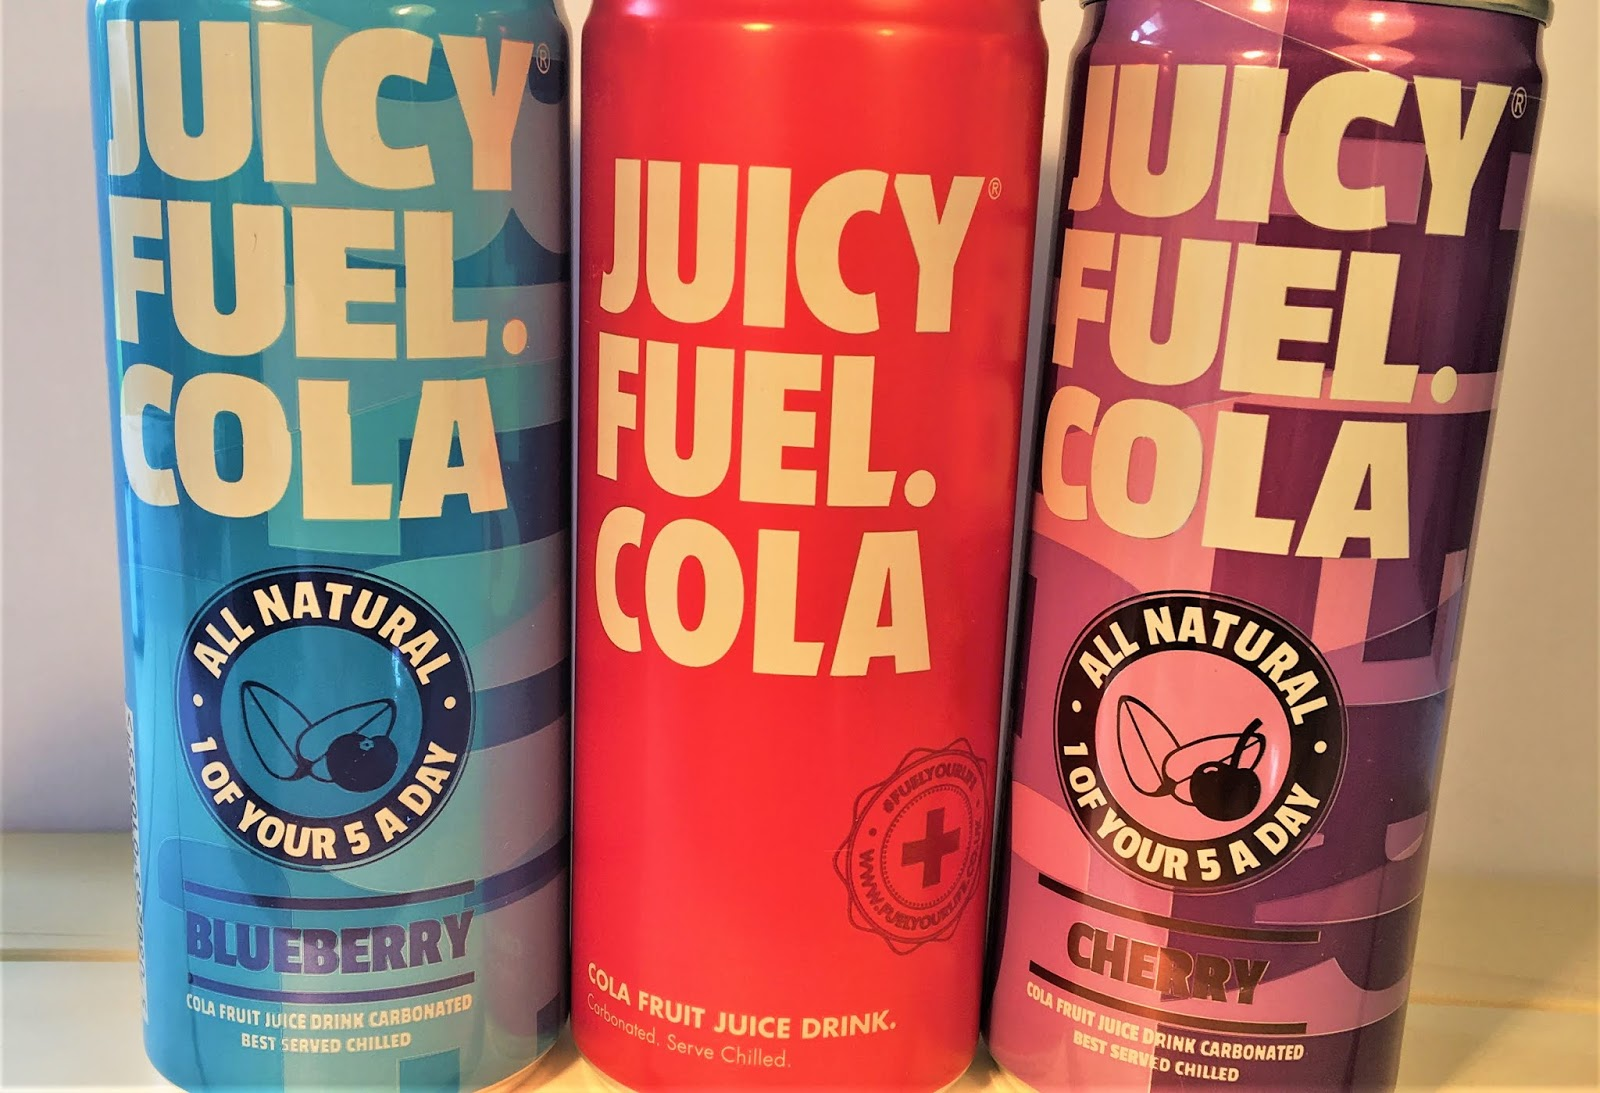 Juicy Fuel Cola